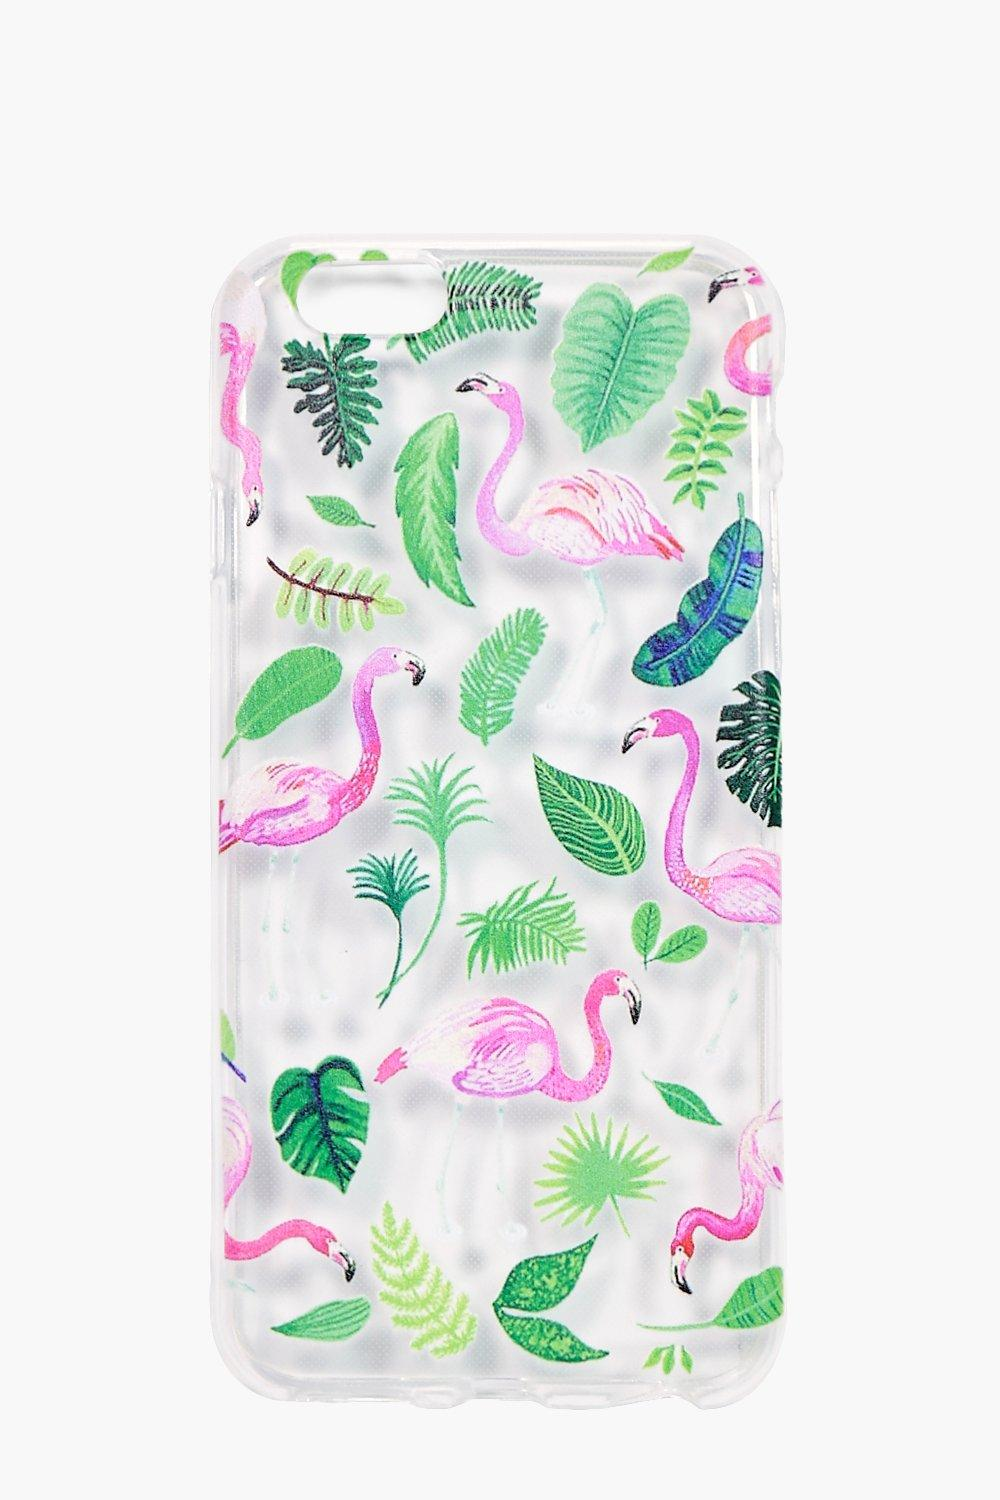 And Leaf iPhone 6 Case - multi - Flamingo And Leaf